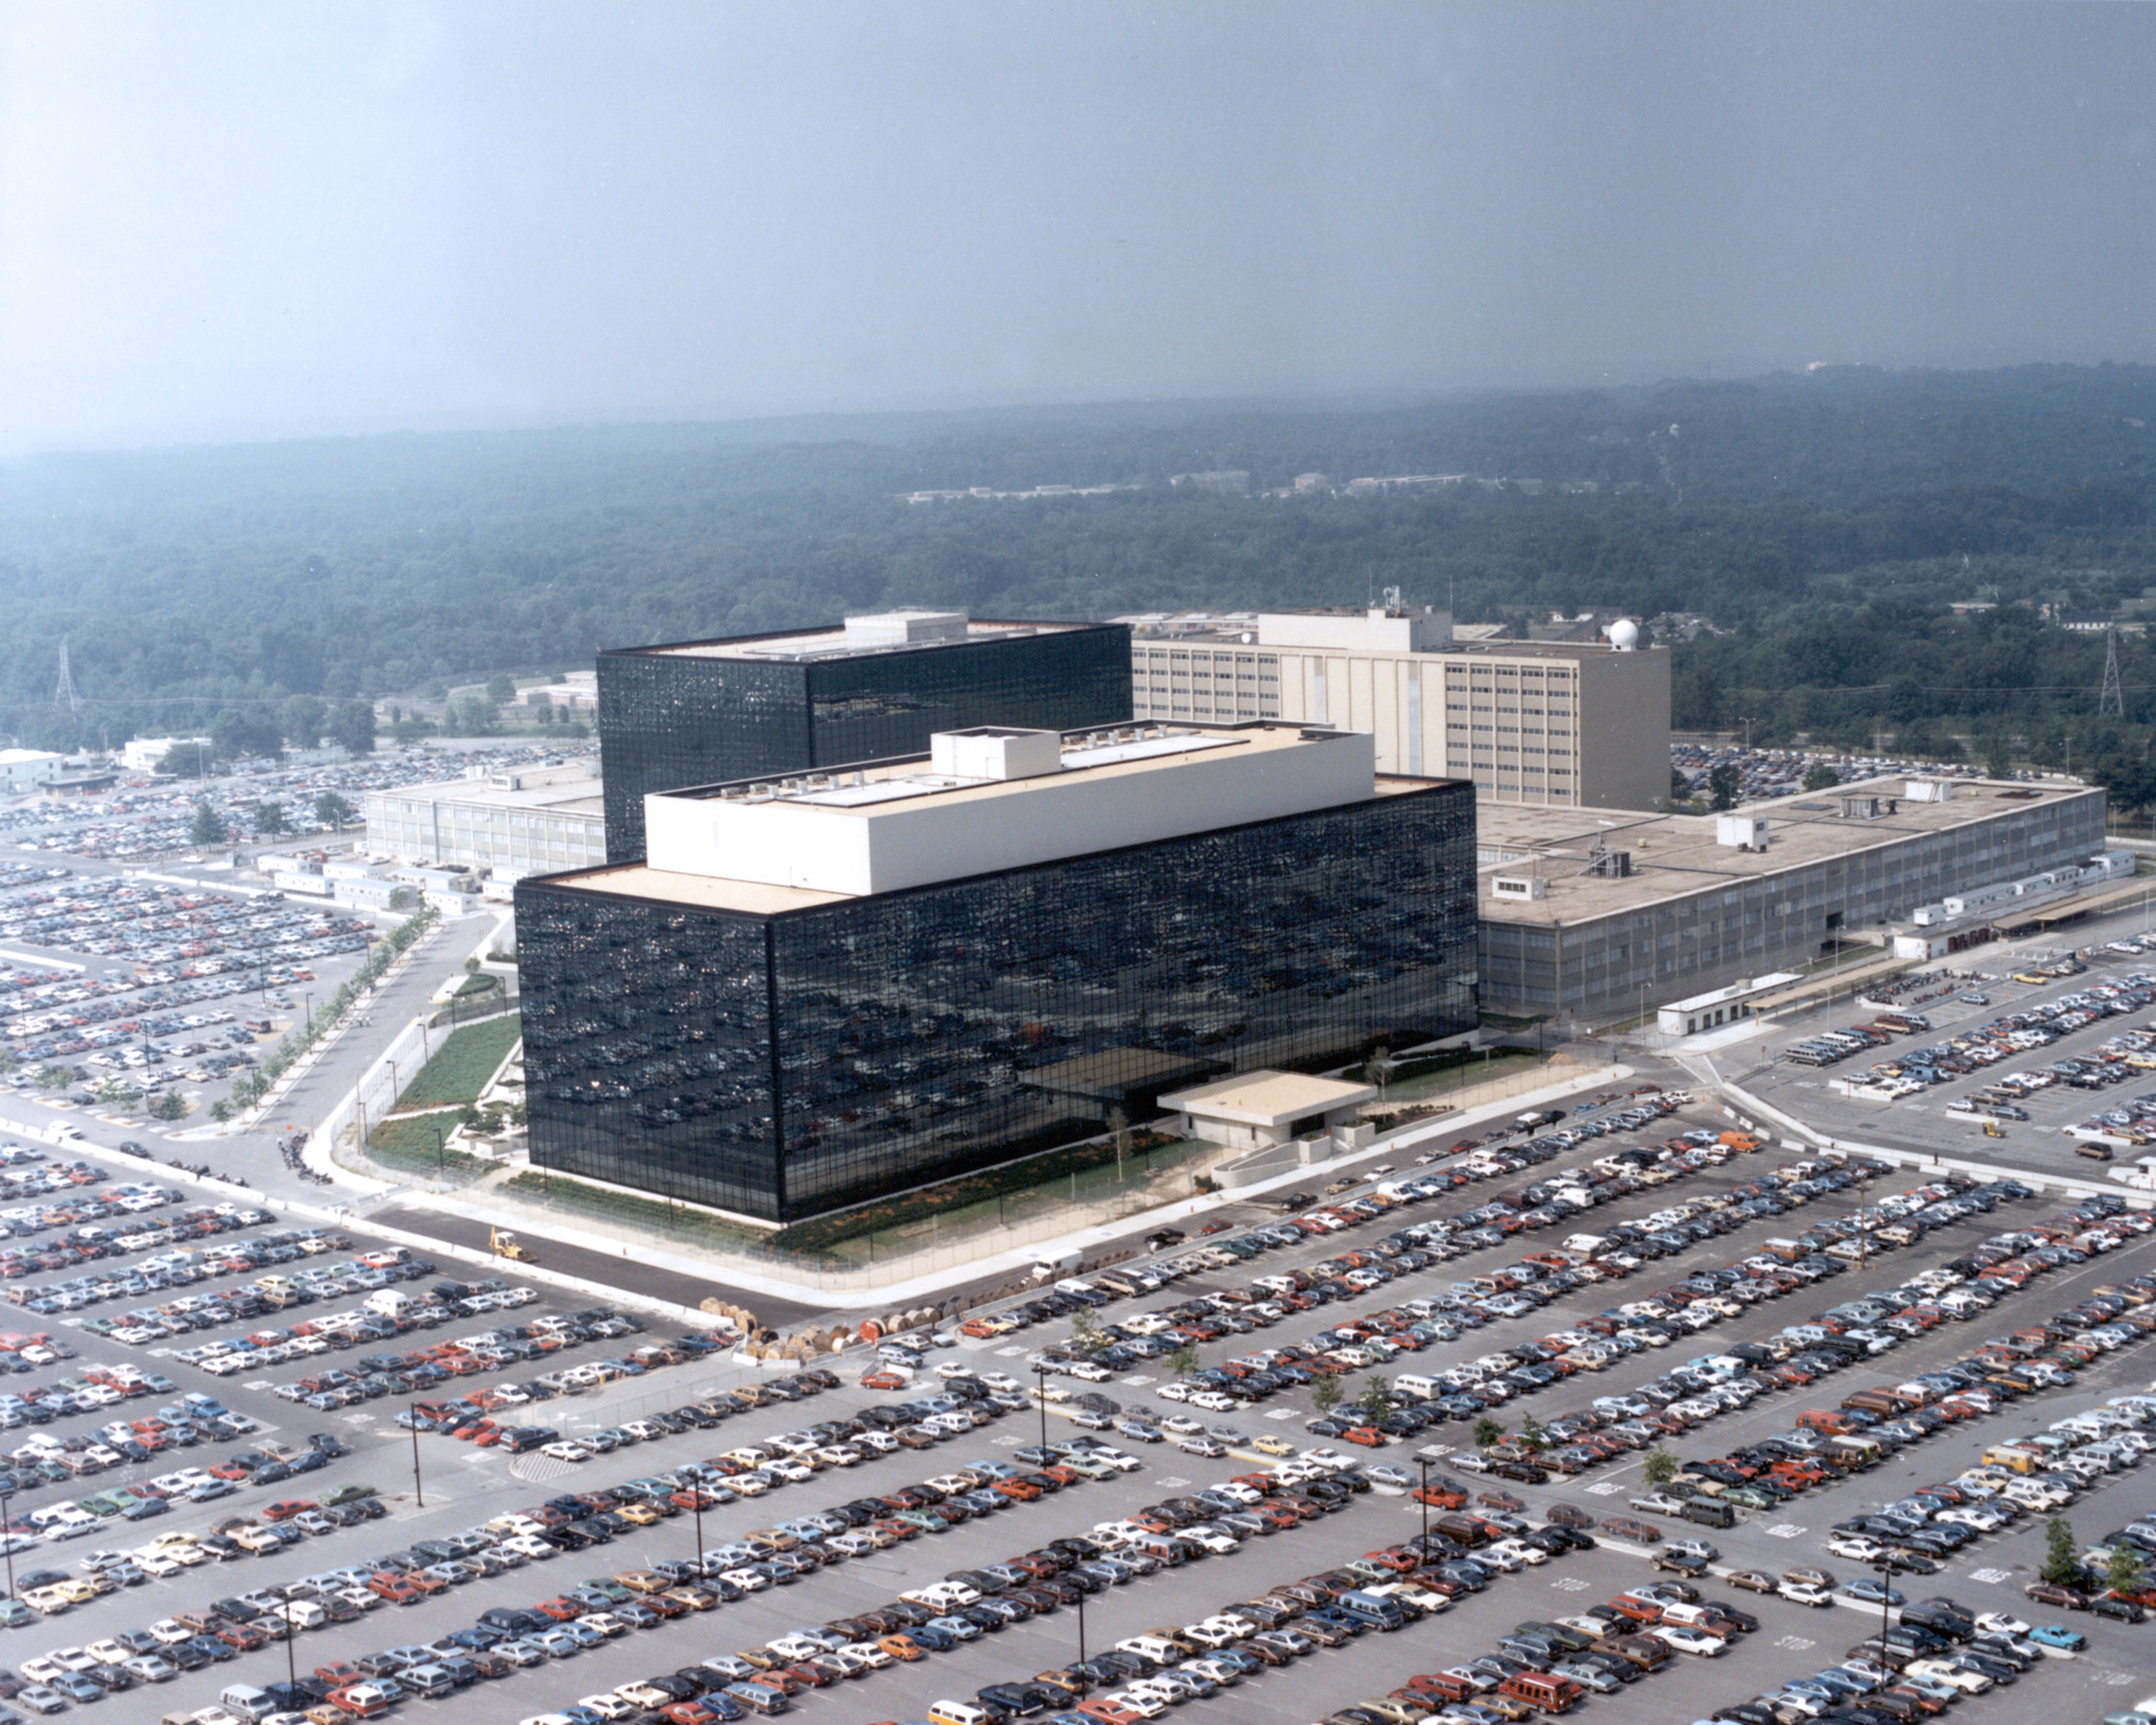 The headquarters of the NSA in Fort Meade, Maryland.